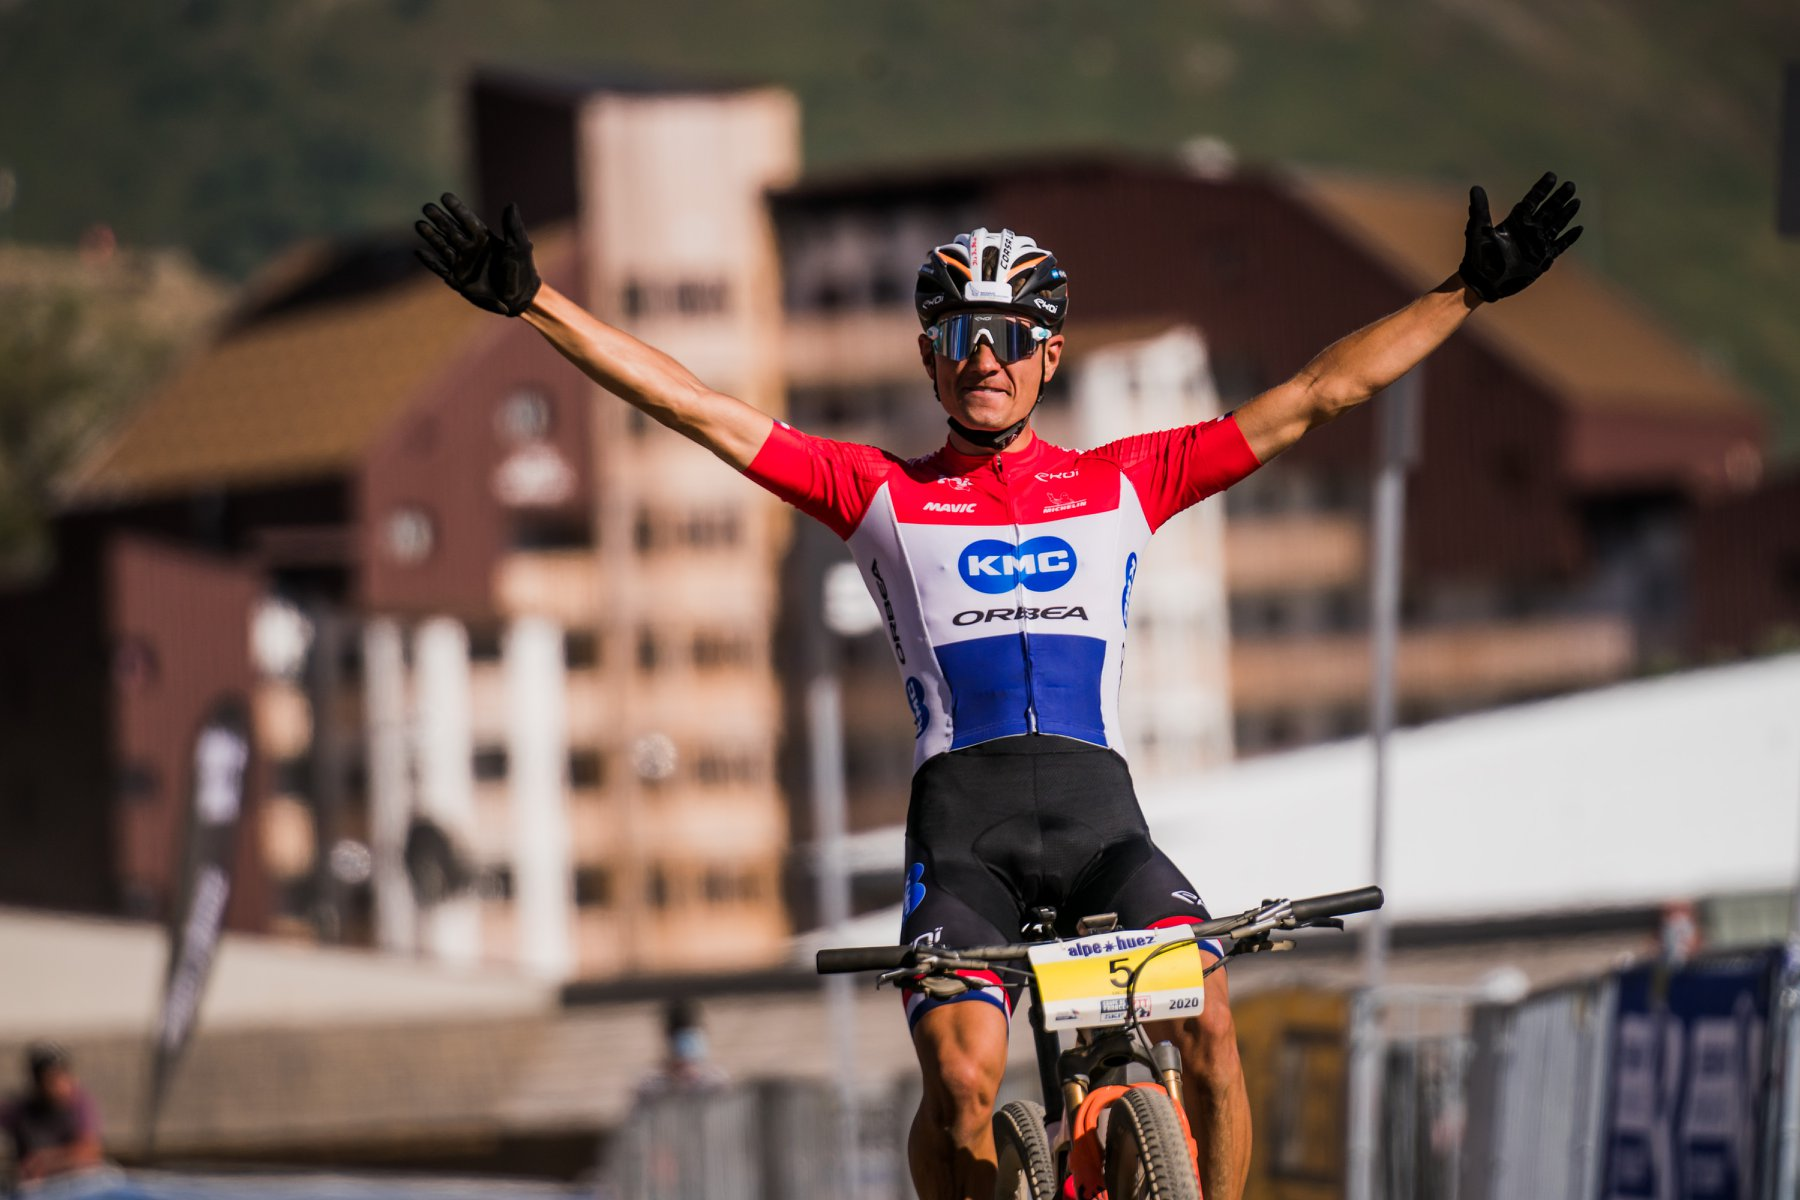 MILAN VADER WINNER OF THE FRENCH CUP OF MTB AT ALPE D'HUEZ, THOMAS LITSCHER 3RD, VICTOR KORETZKY 5TH